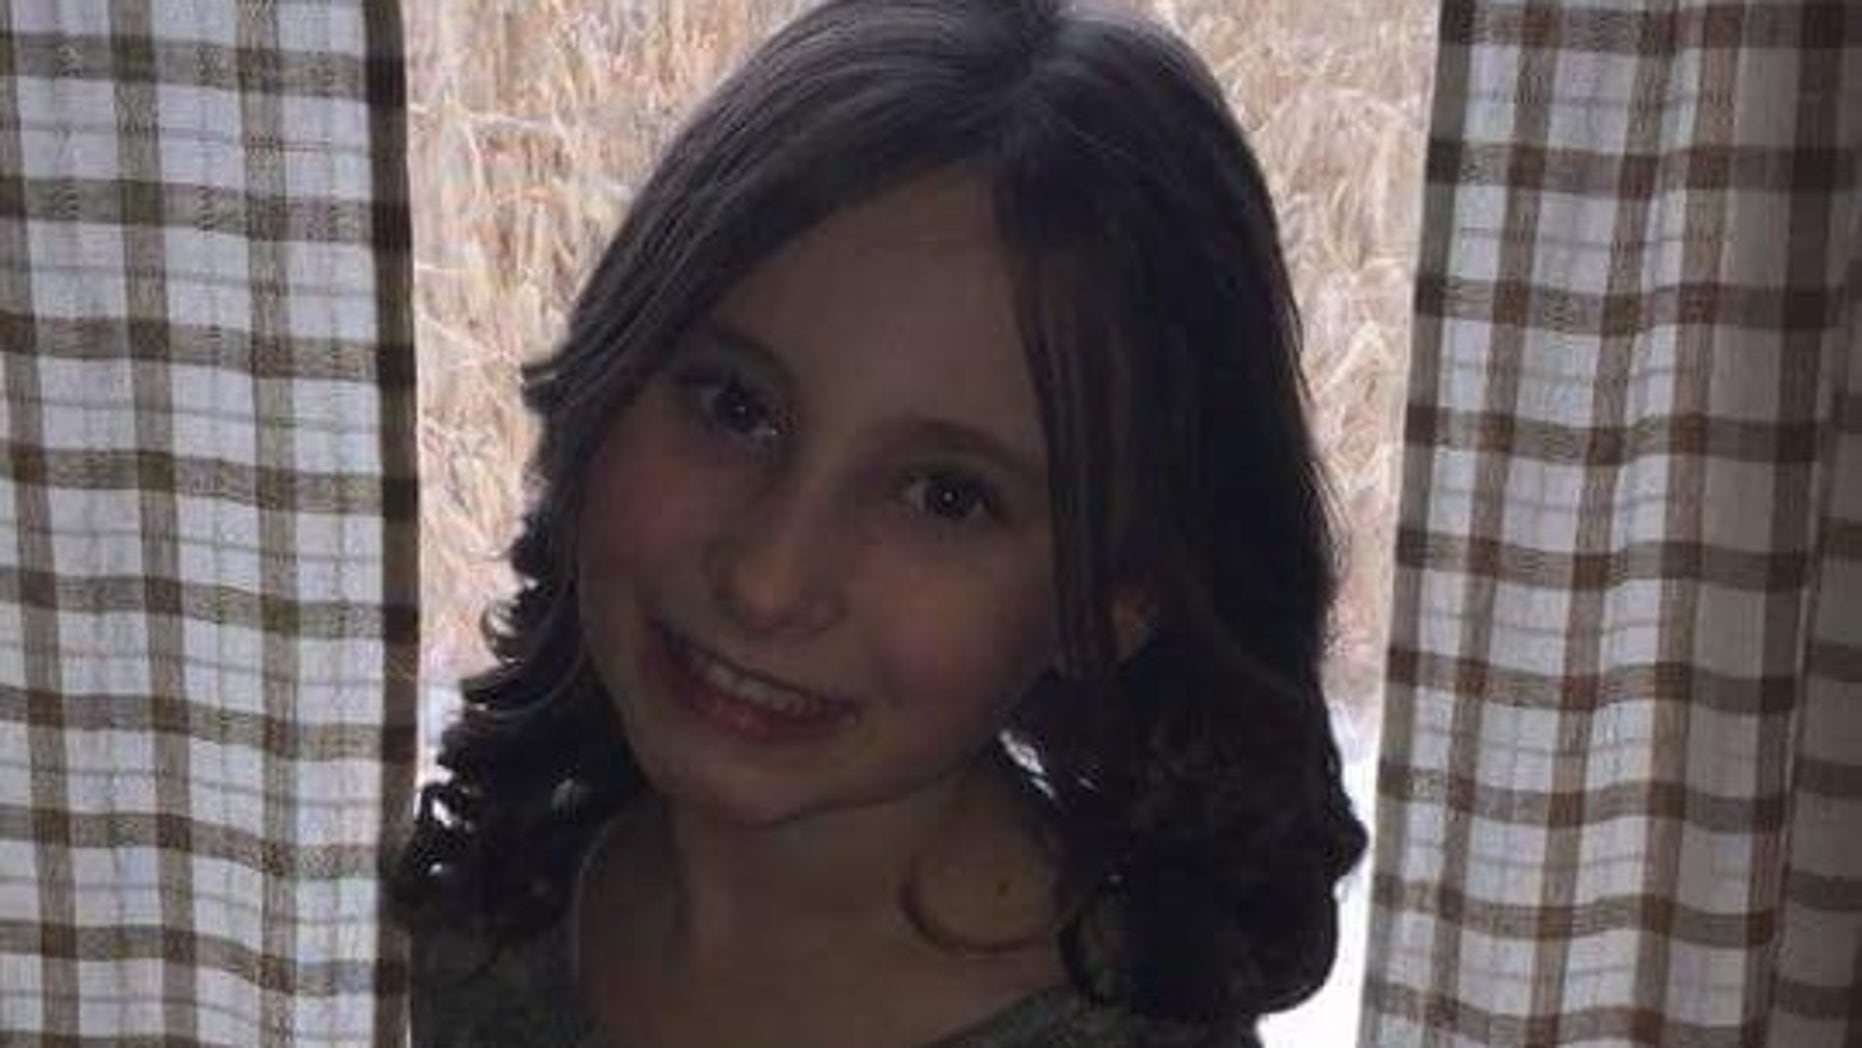 Pennsylvania Girl With Diabetes Dies After Blood Sugar Drops During